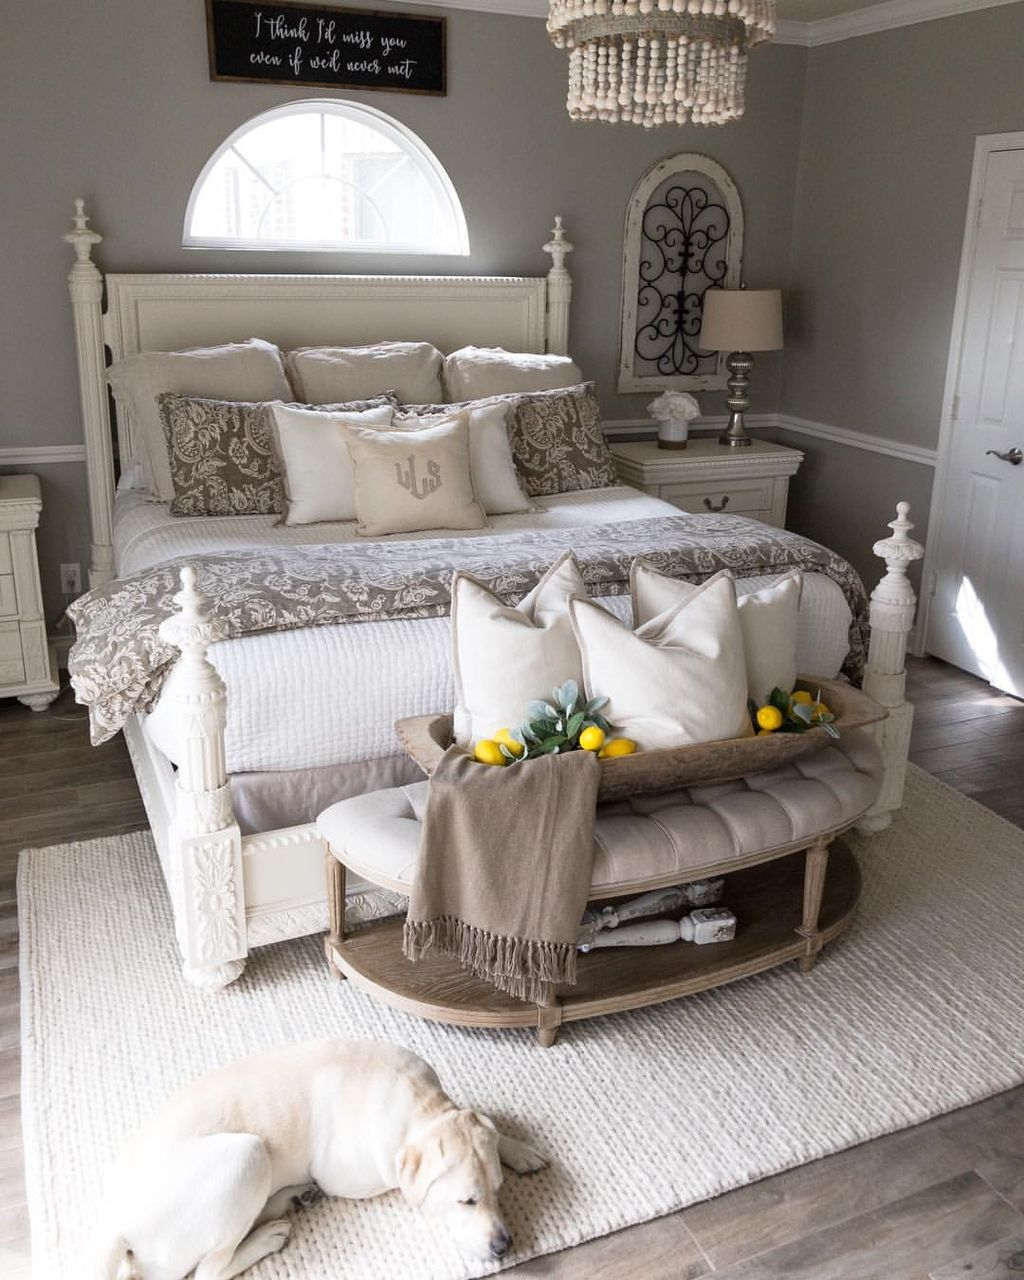 best decorating ideas images in bedrooms dinning table home decor also rh pinterest